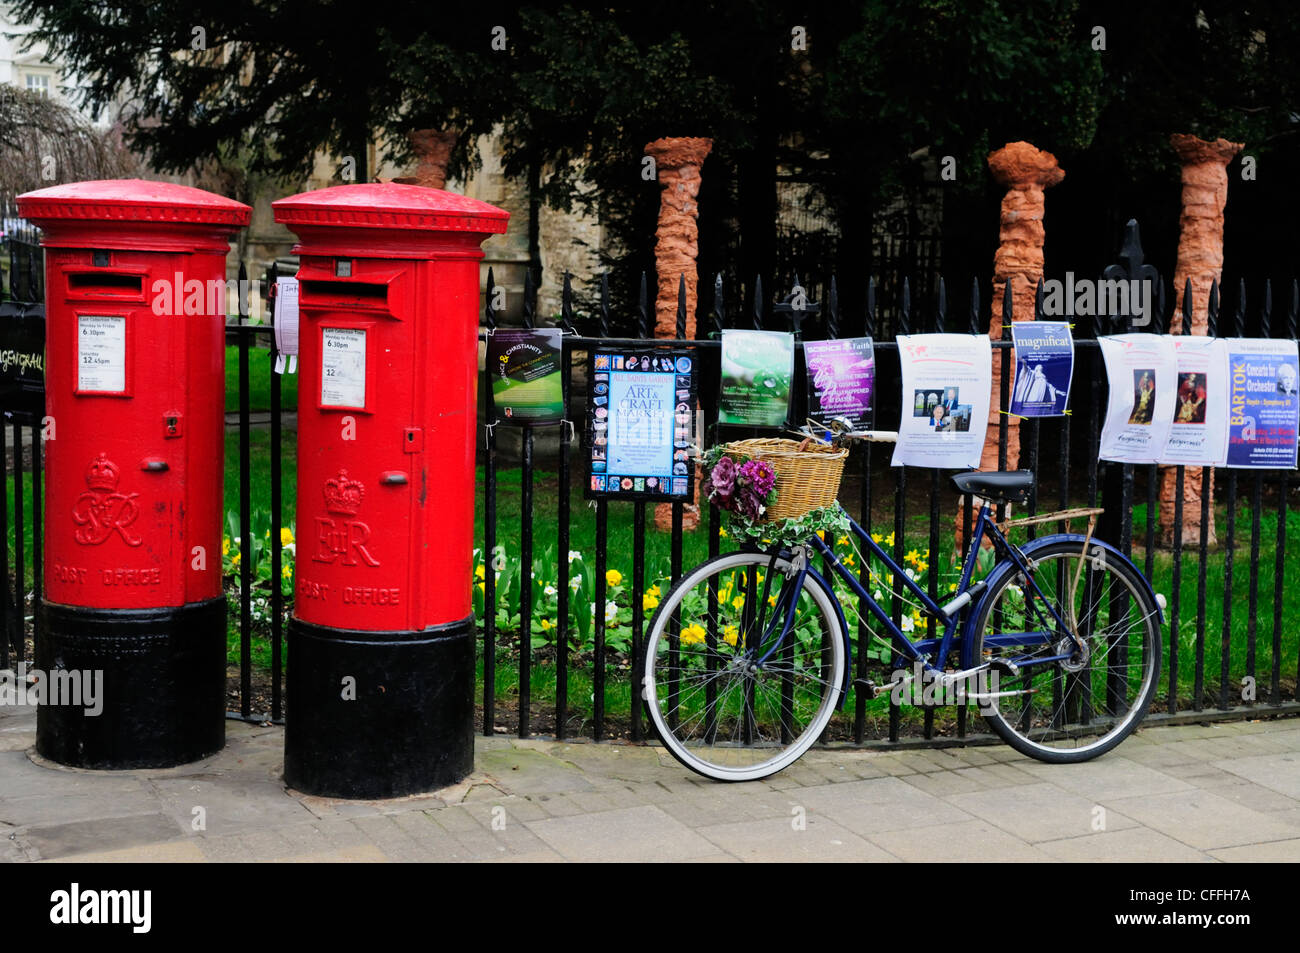 Post Boxes and Bicycle by Market Square, Cambridge, England, UK - Stock Image